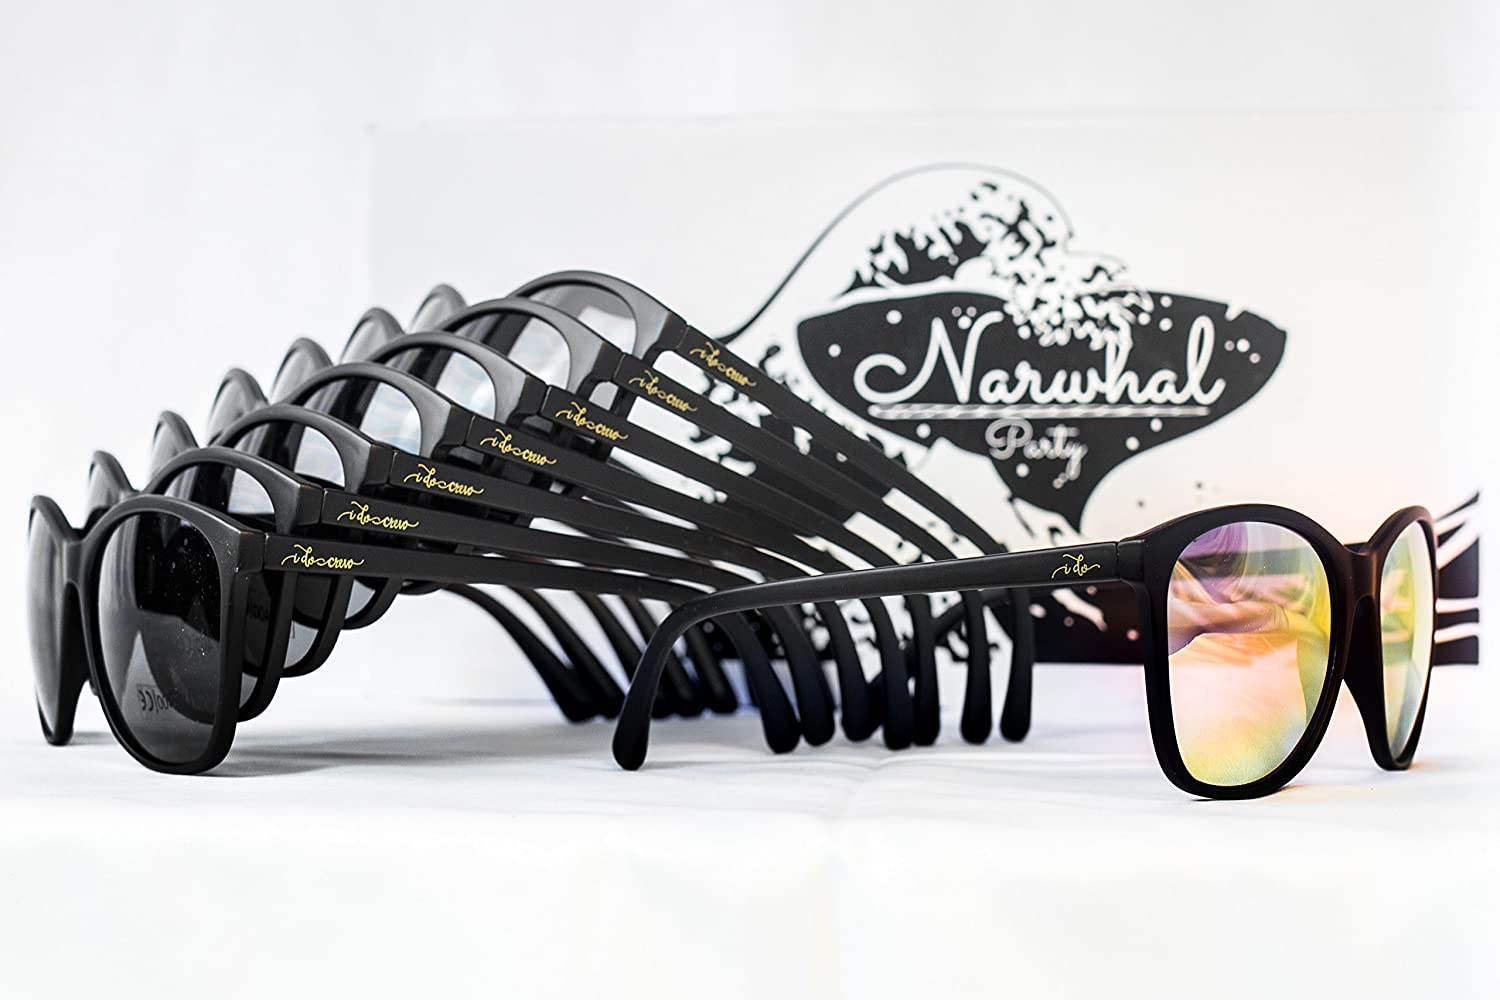 4a2421a74a6 Amazon.com   I Do Crew  Sunglasses by Narwhal Party - 8 Pairs of Matte  Black Glasses with Rose Mirrored   Grey Lenses are Perfect for Bachelorette  Parties